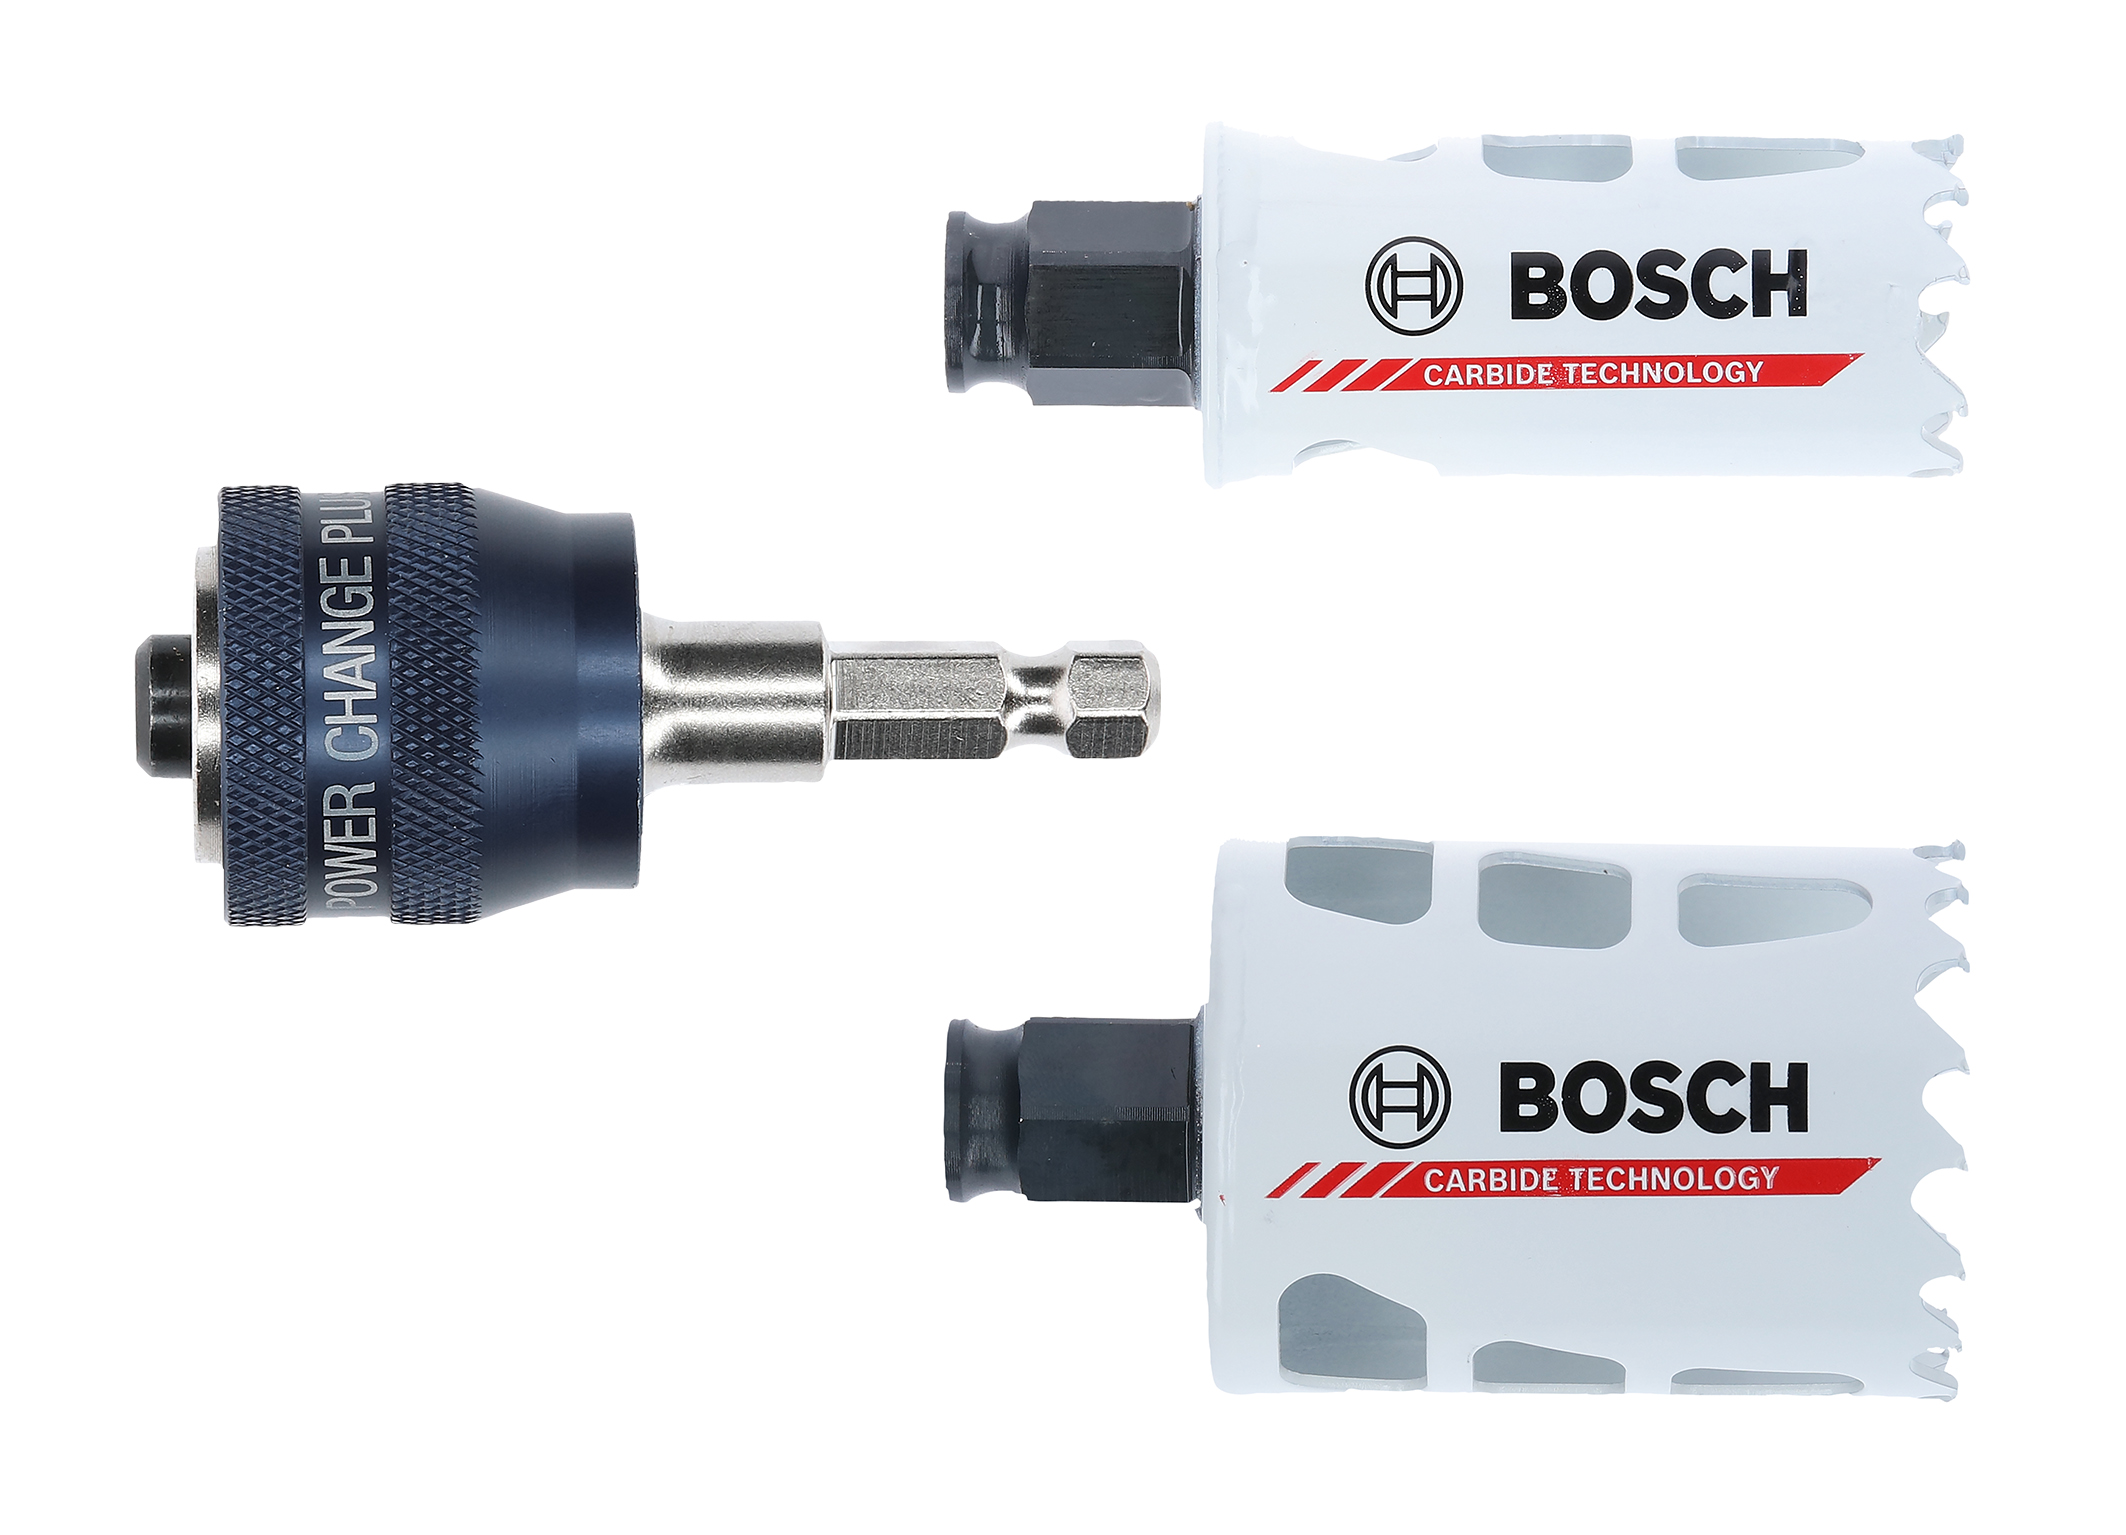 "All-rounder ""Endurance for Heavy Duty"" carbide holesaw: Bosch expands its range with carbide technology"